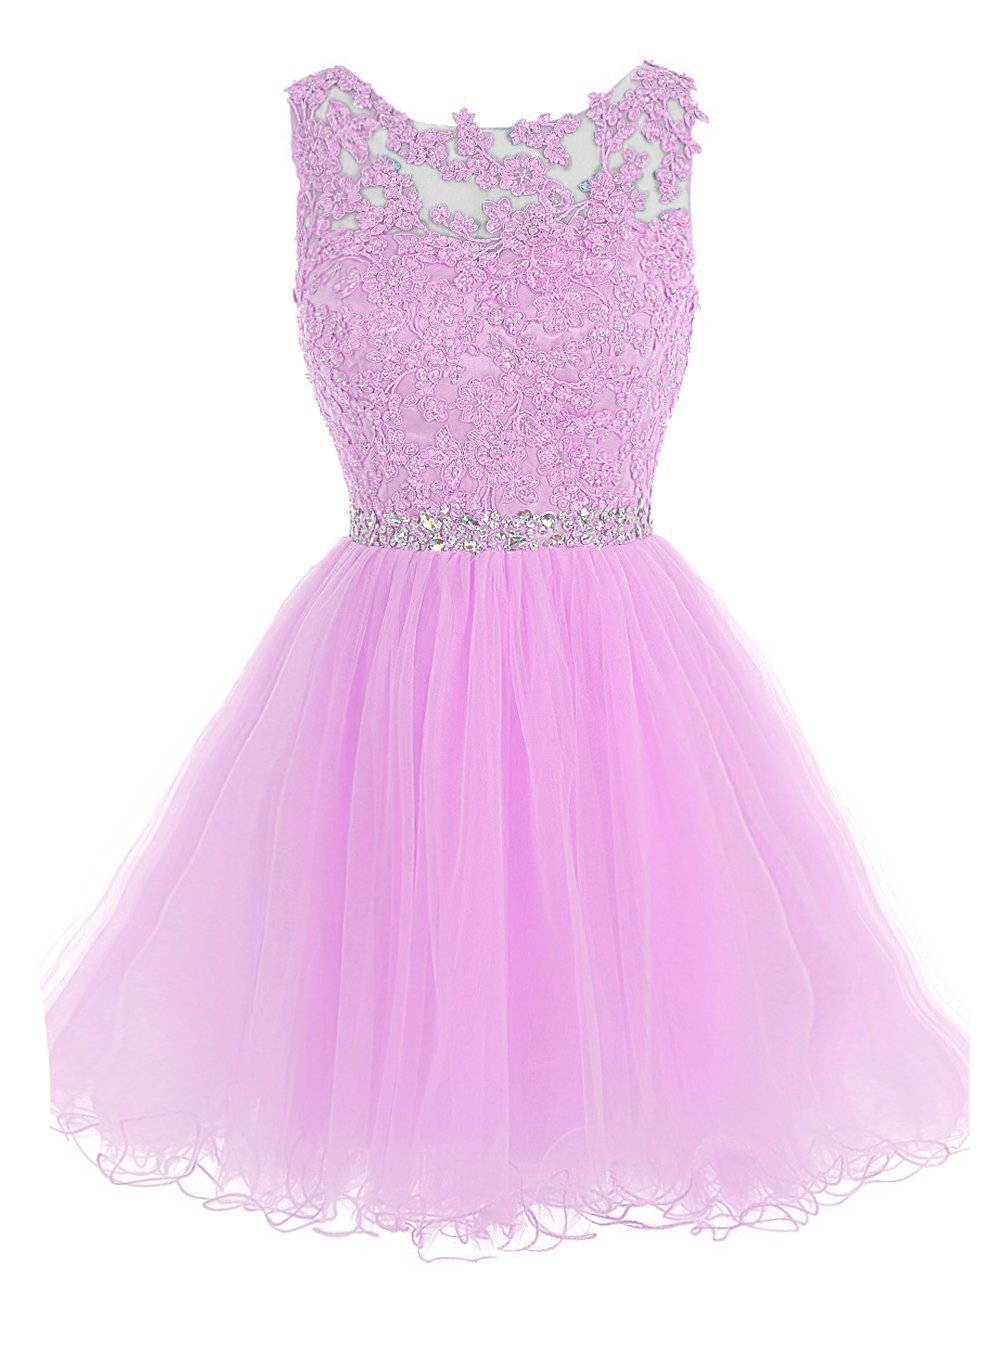 Sarahbridal Women's Tulle Short Homecoming Dresses Applique Lace Prom Gowns Pink US8